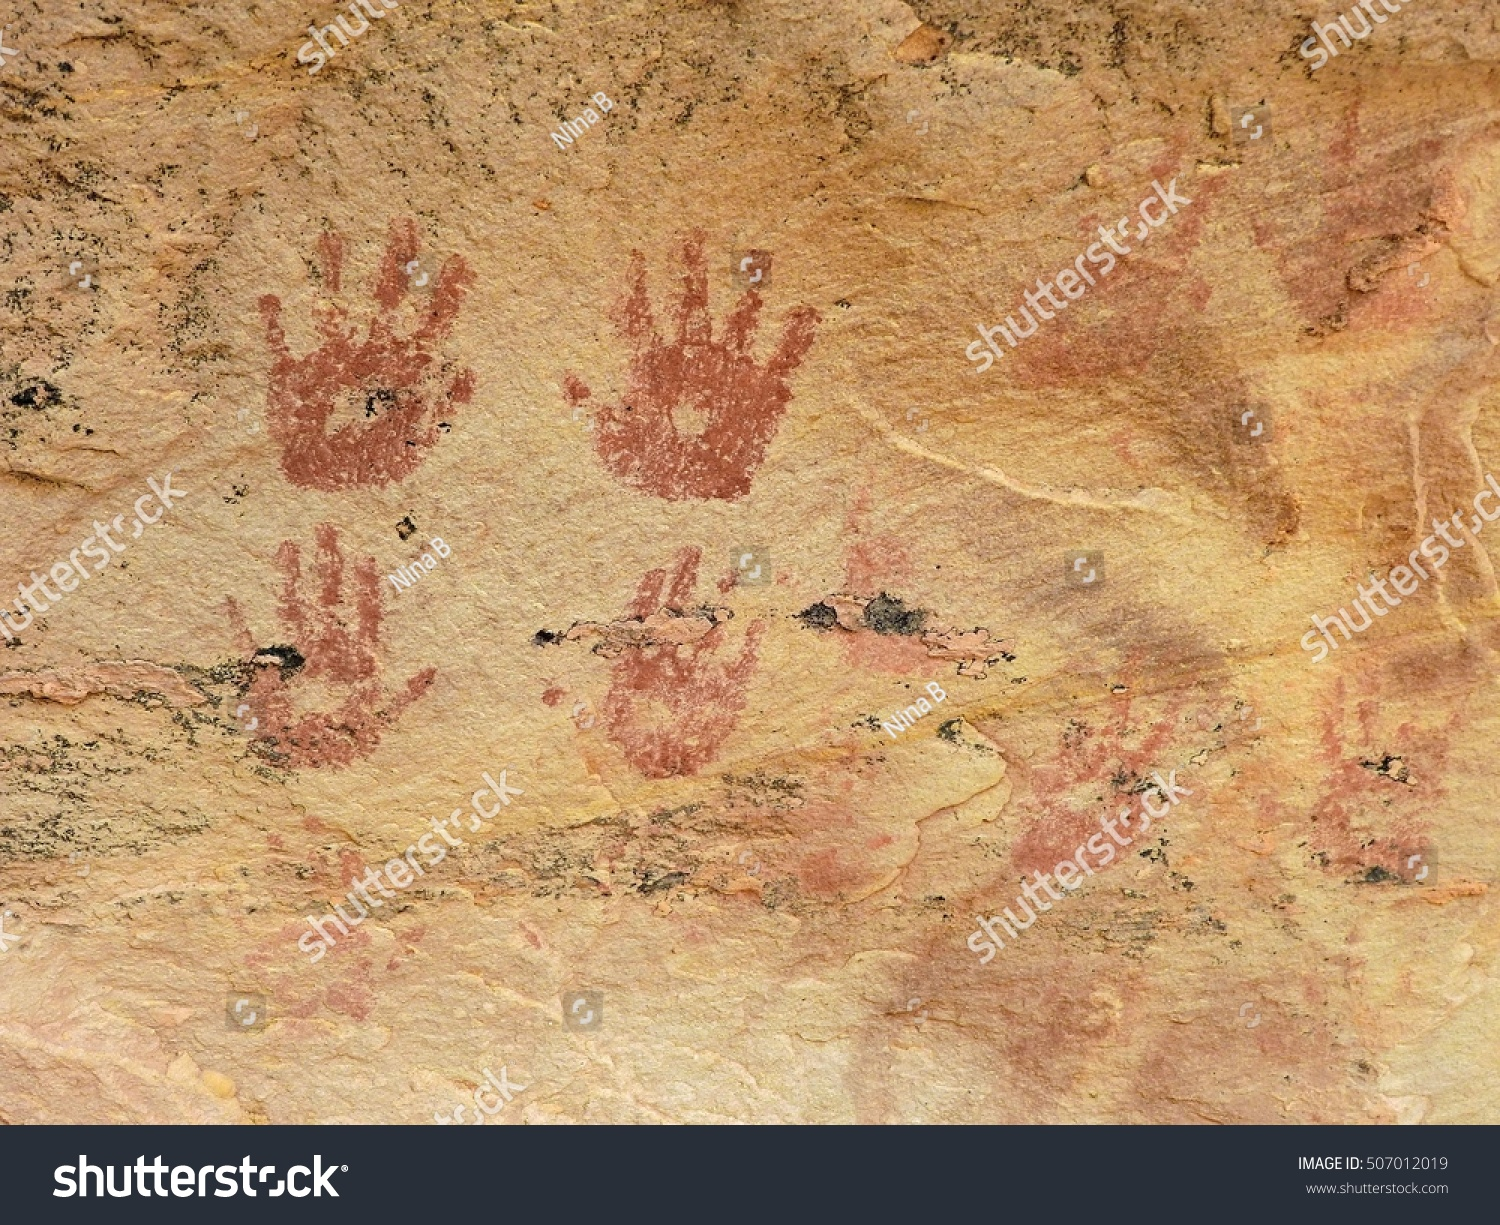 ancient native american hand print pictographs stock photo (edit now